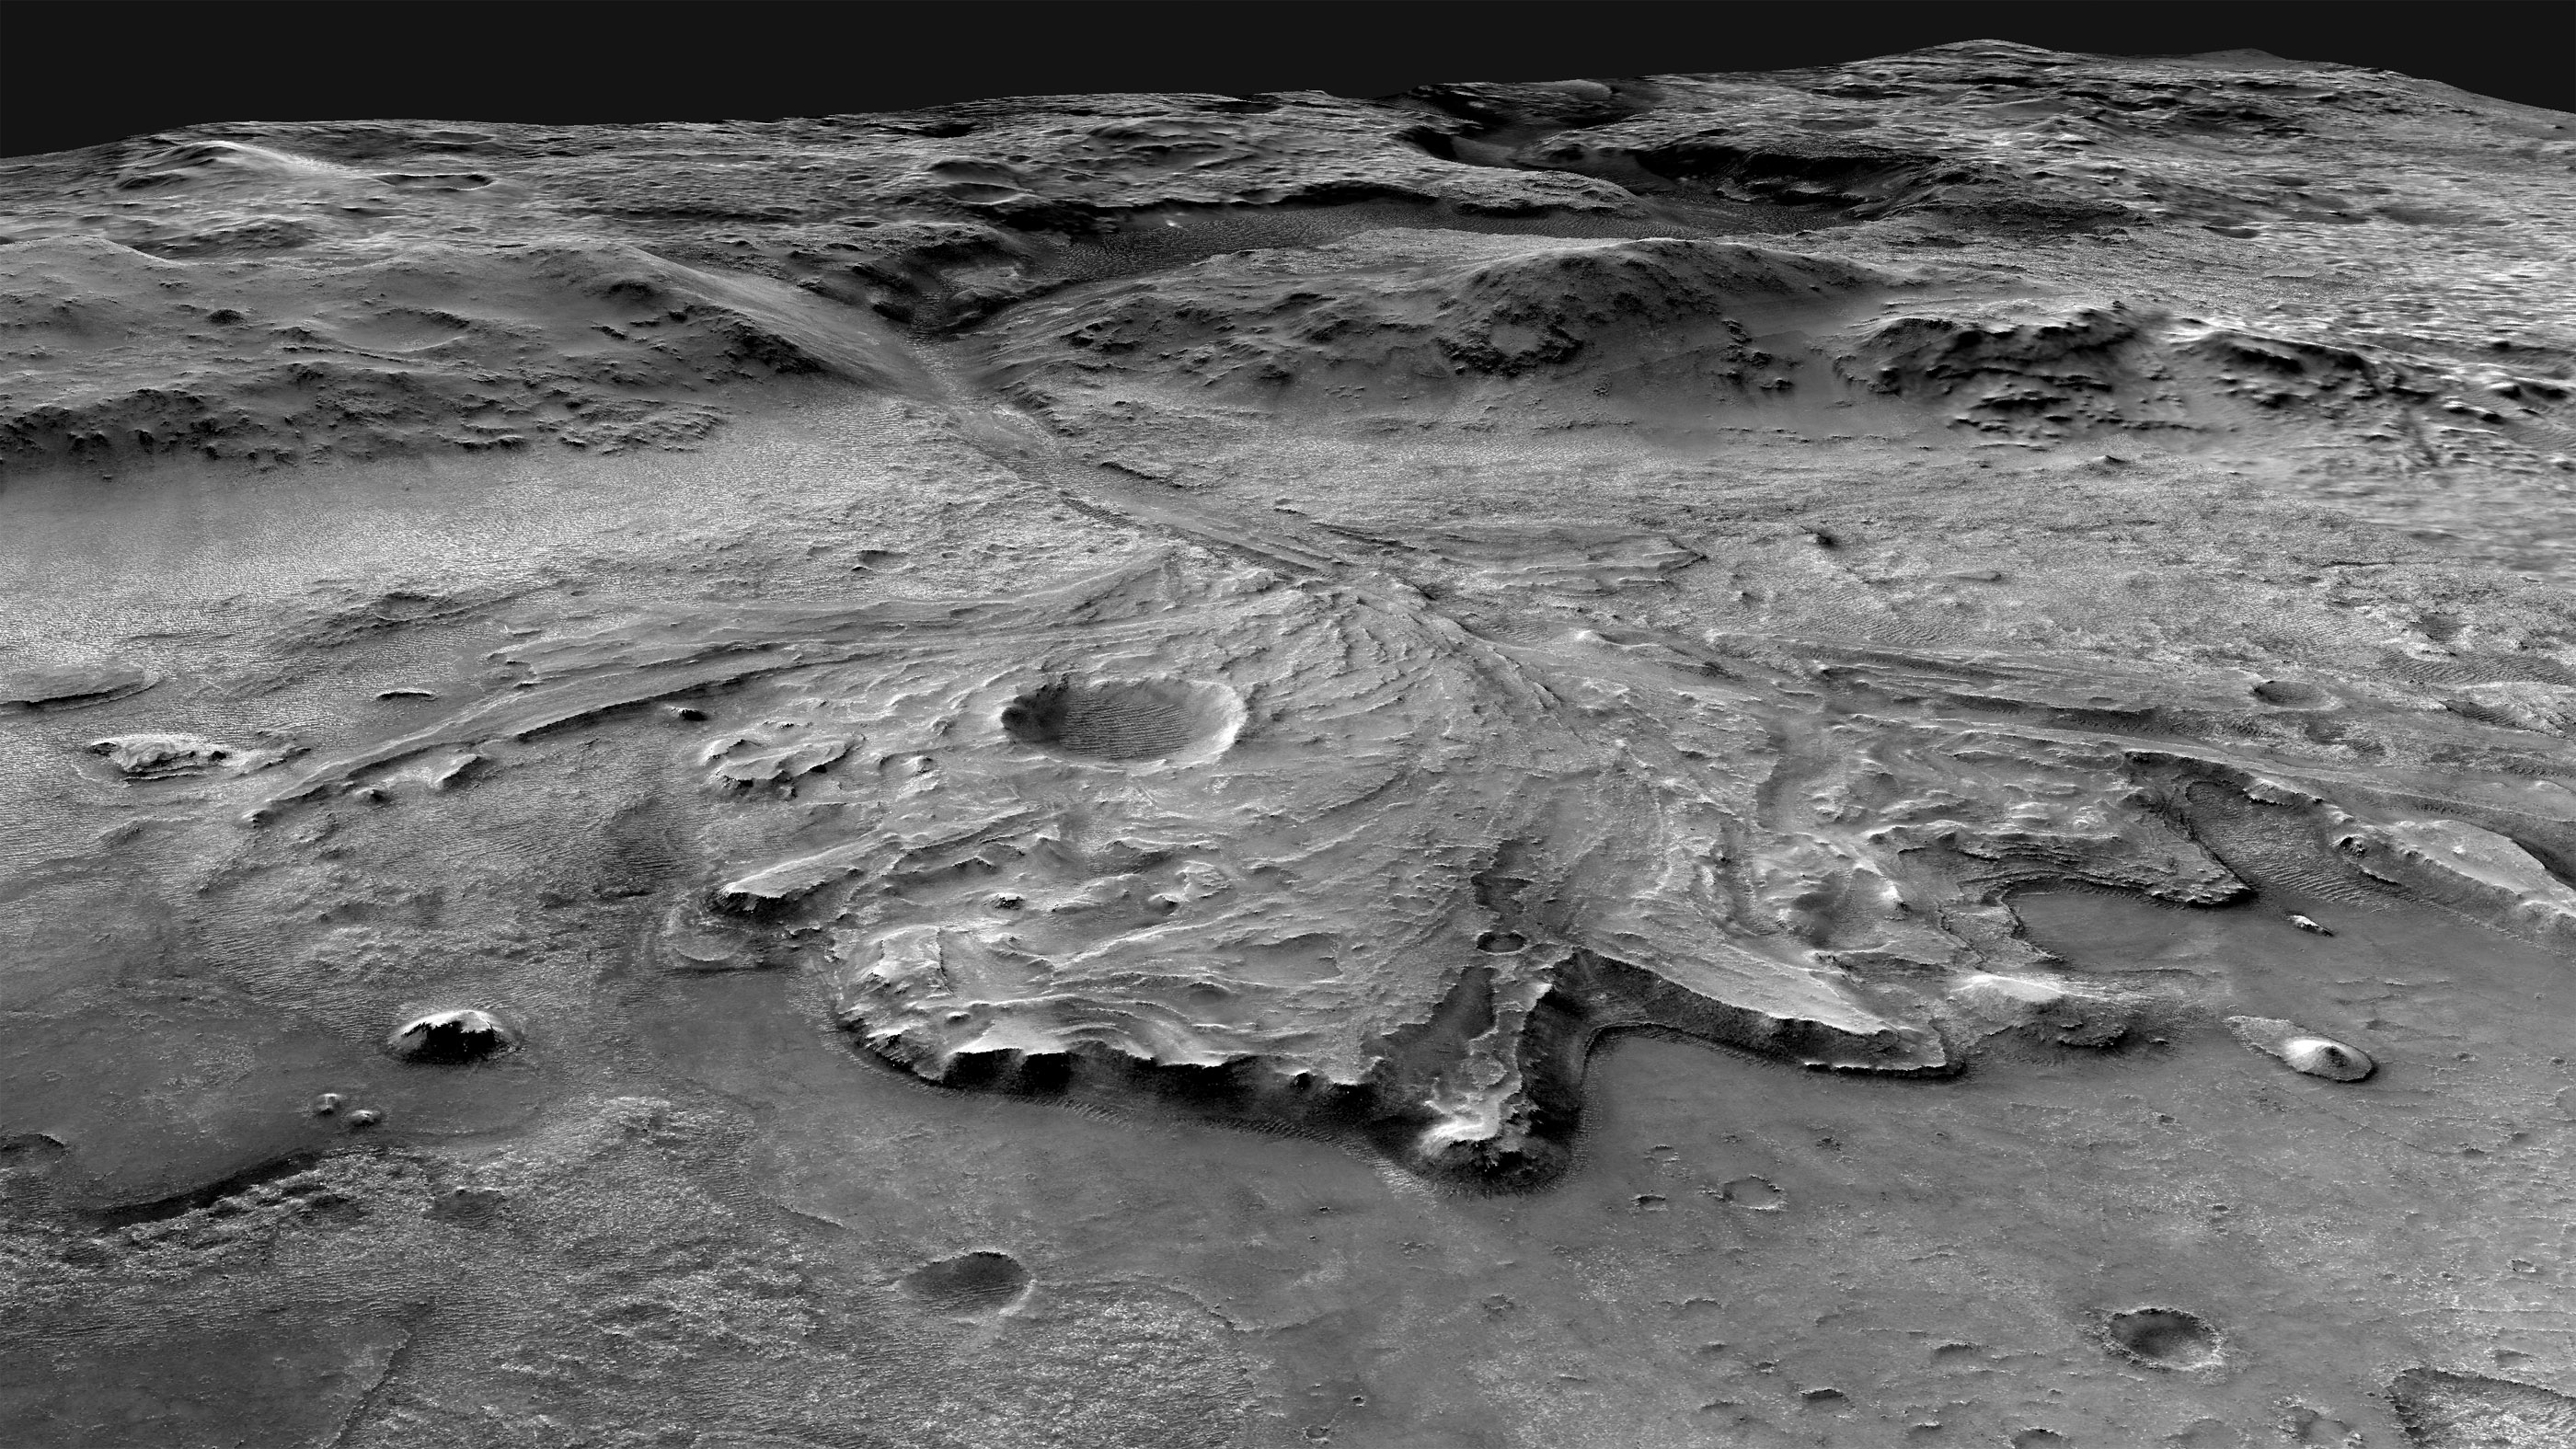 This oblique view looks to the west from above the Jezero crater floor, over the fan-shaped delta deposit, and into the valley that cuts through the crater rim.